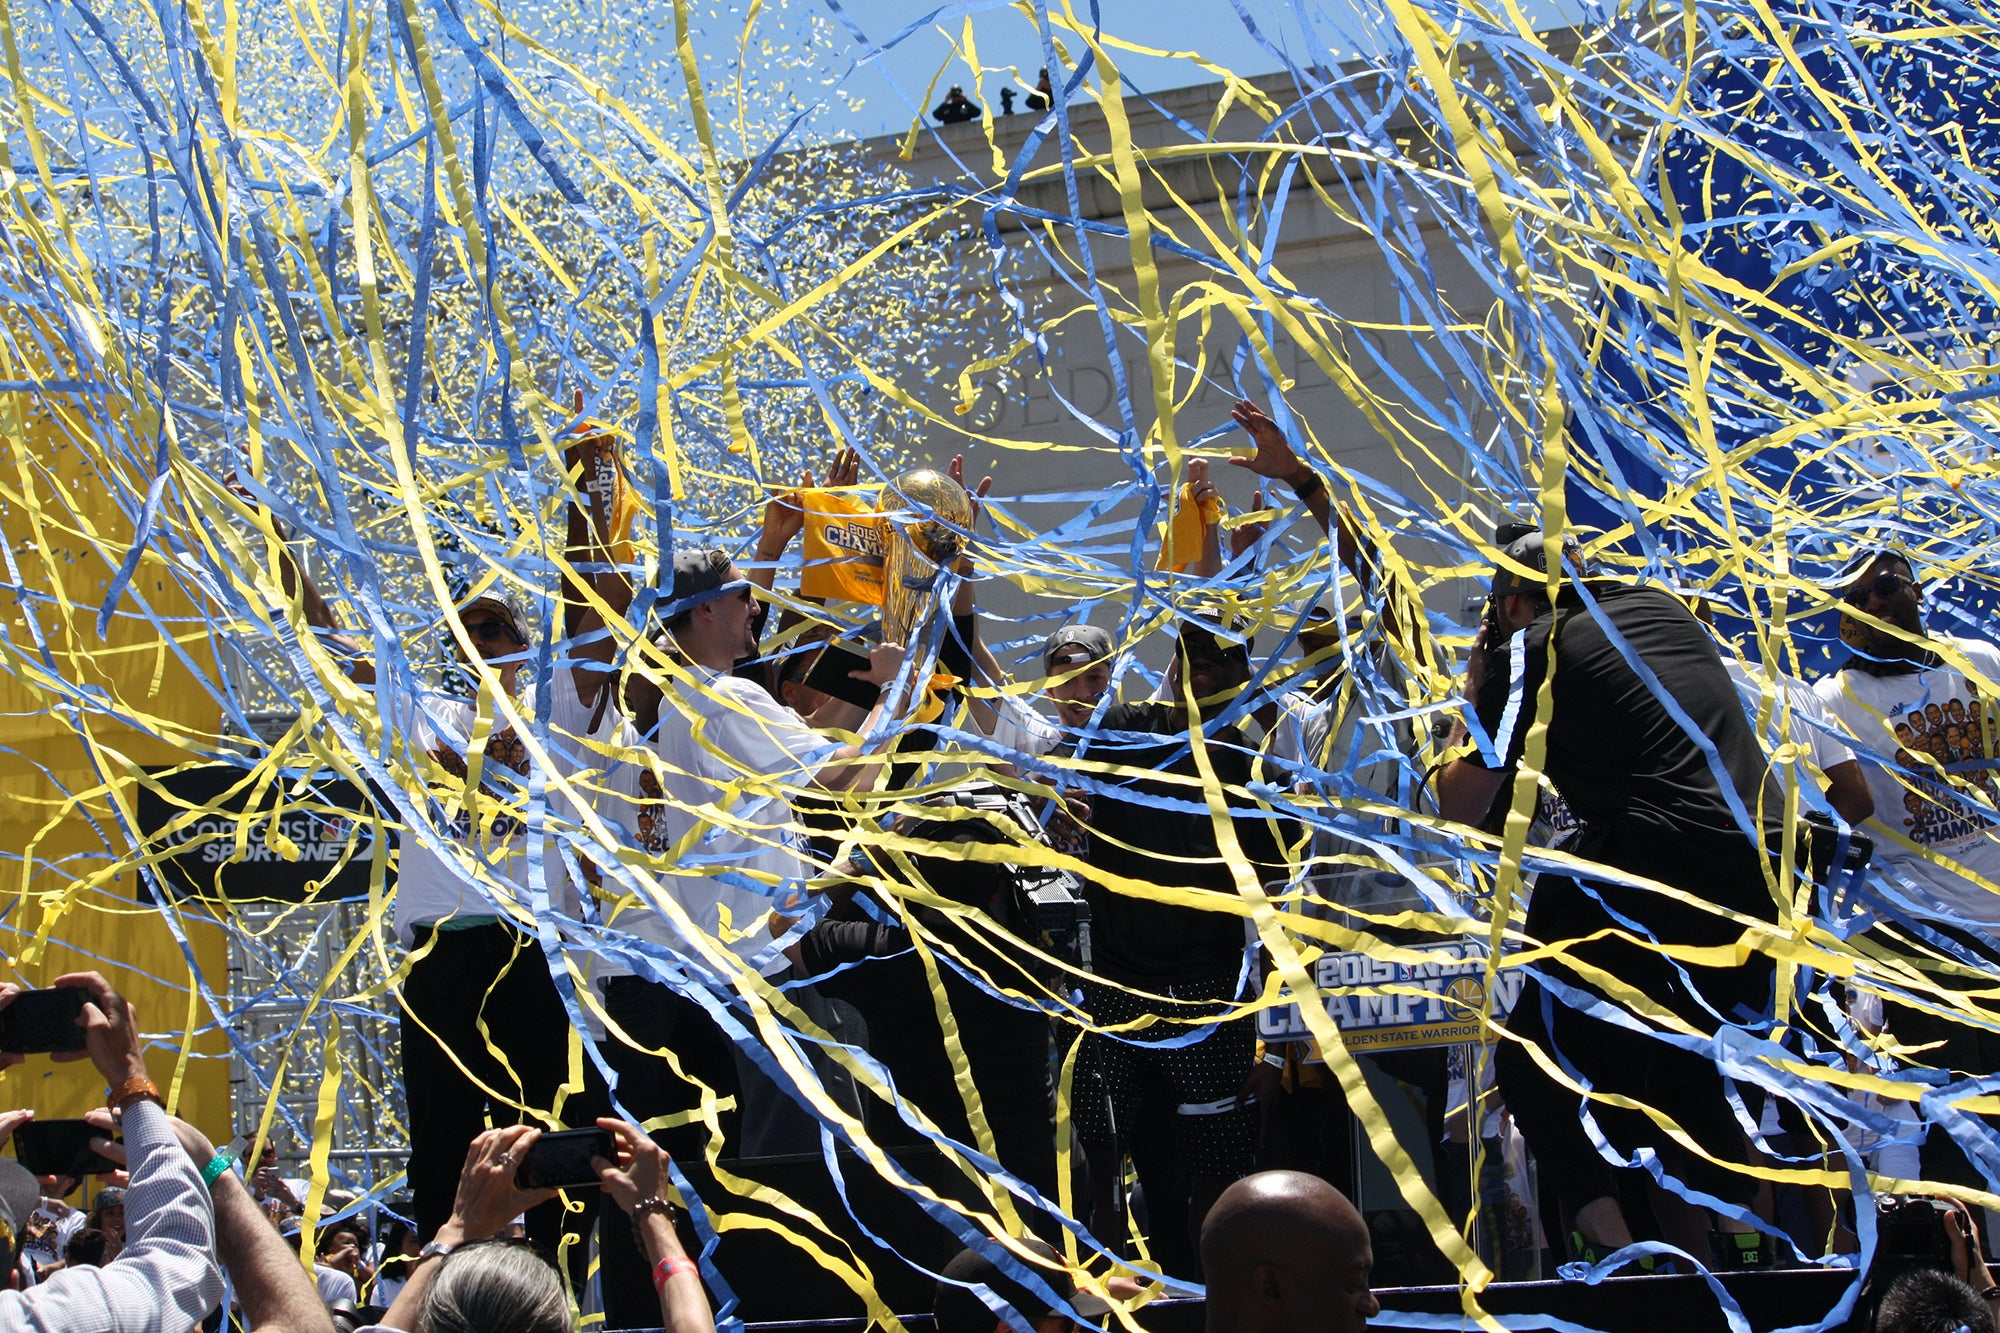 The confetti and streamers rain down on the players and officials on the stage.